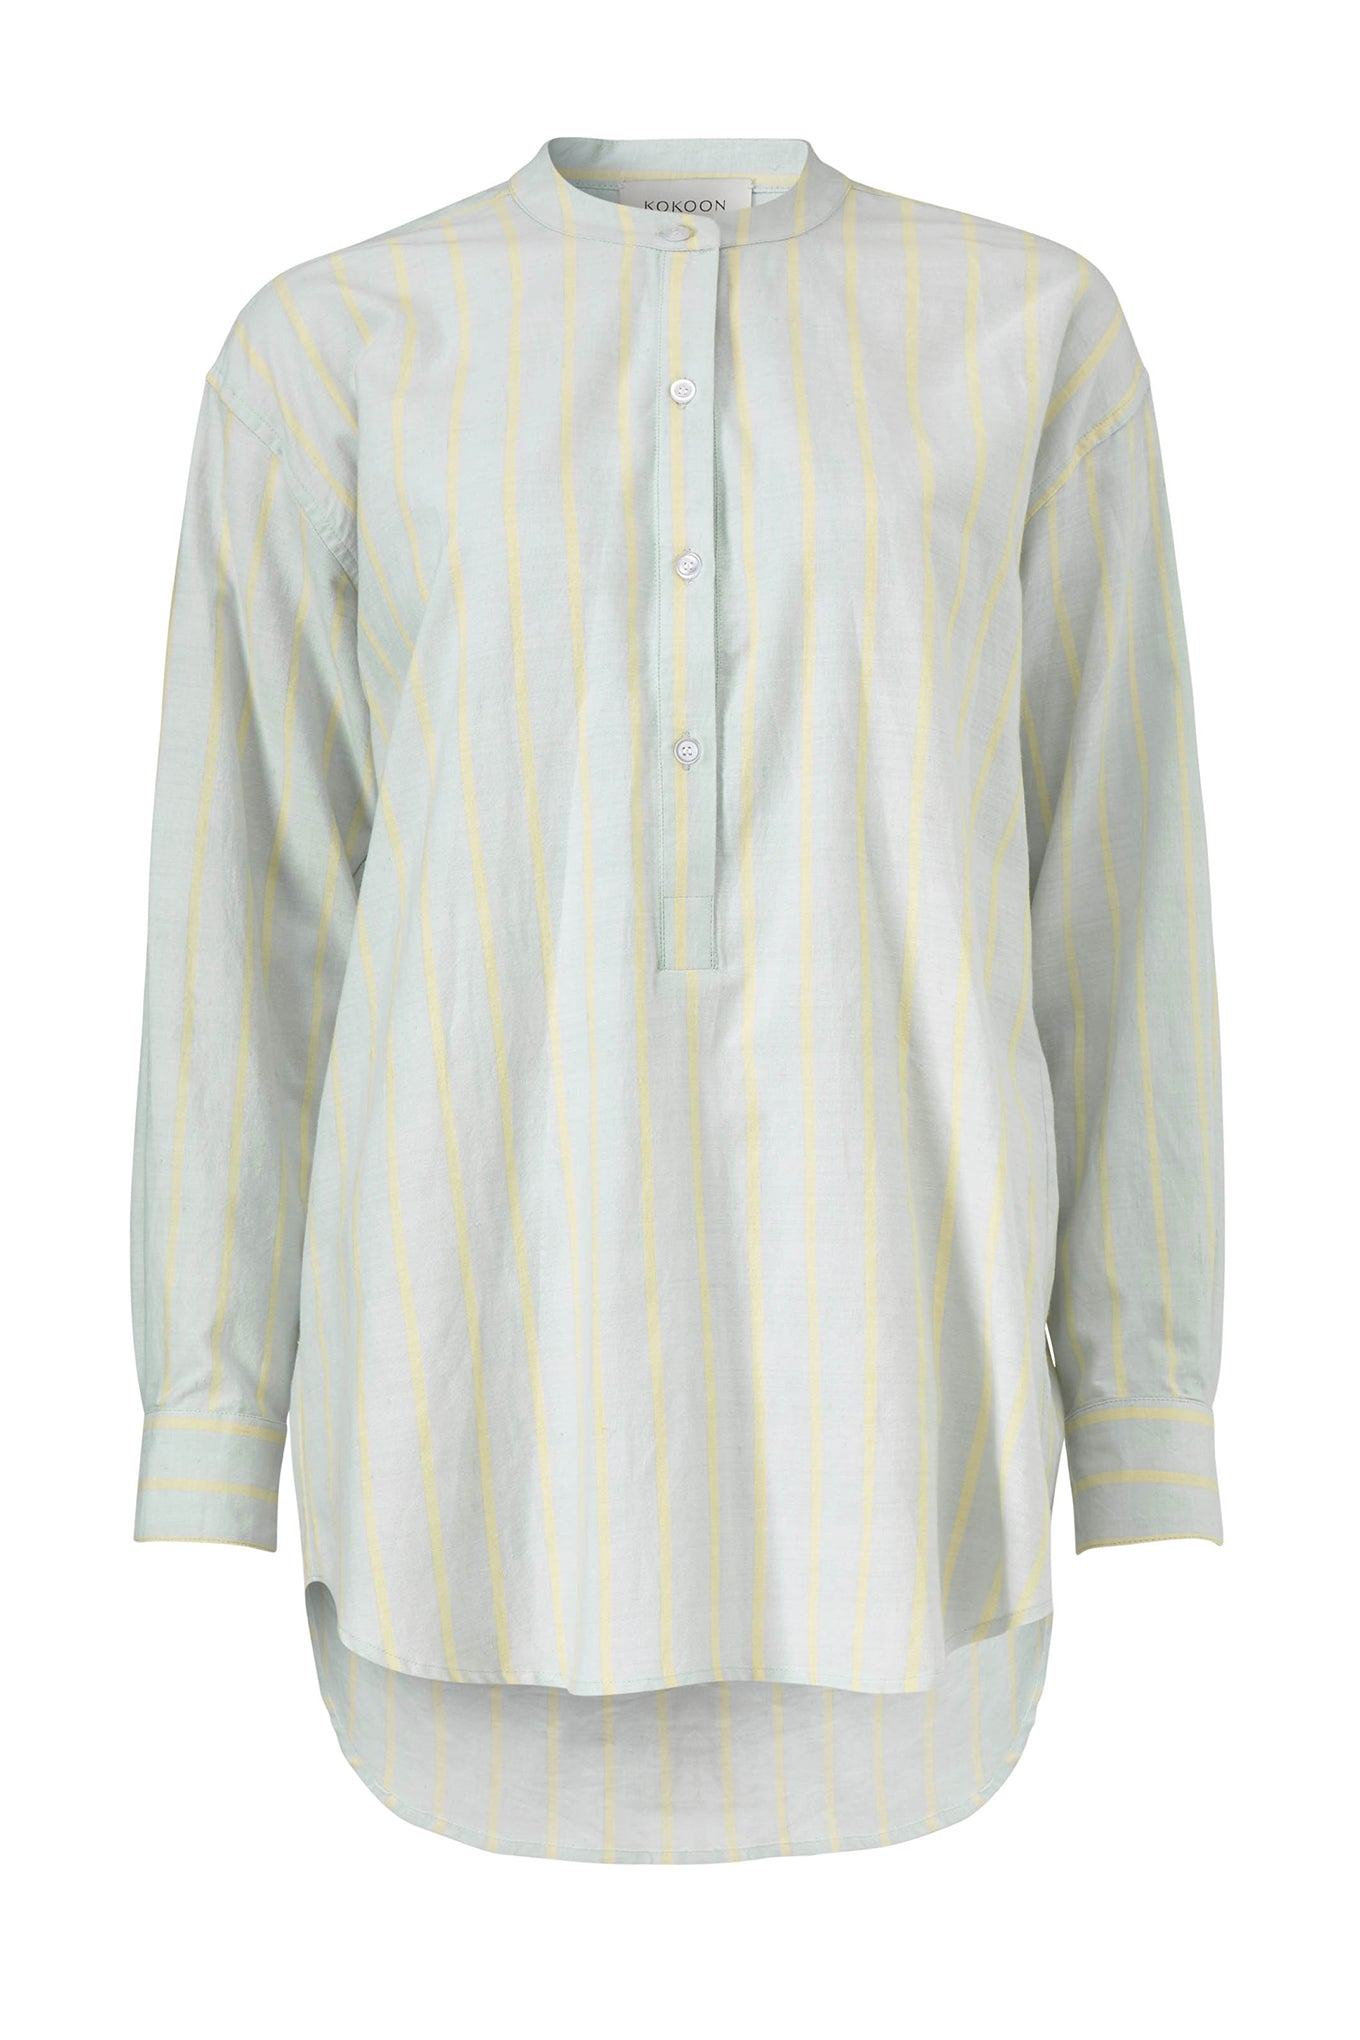 Elvin Shirt - Blue/Yellow Stripe - Cotton/Silk